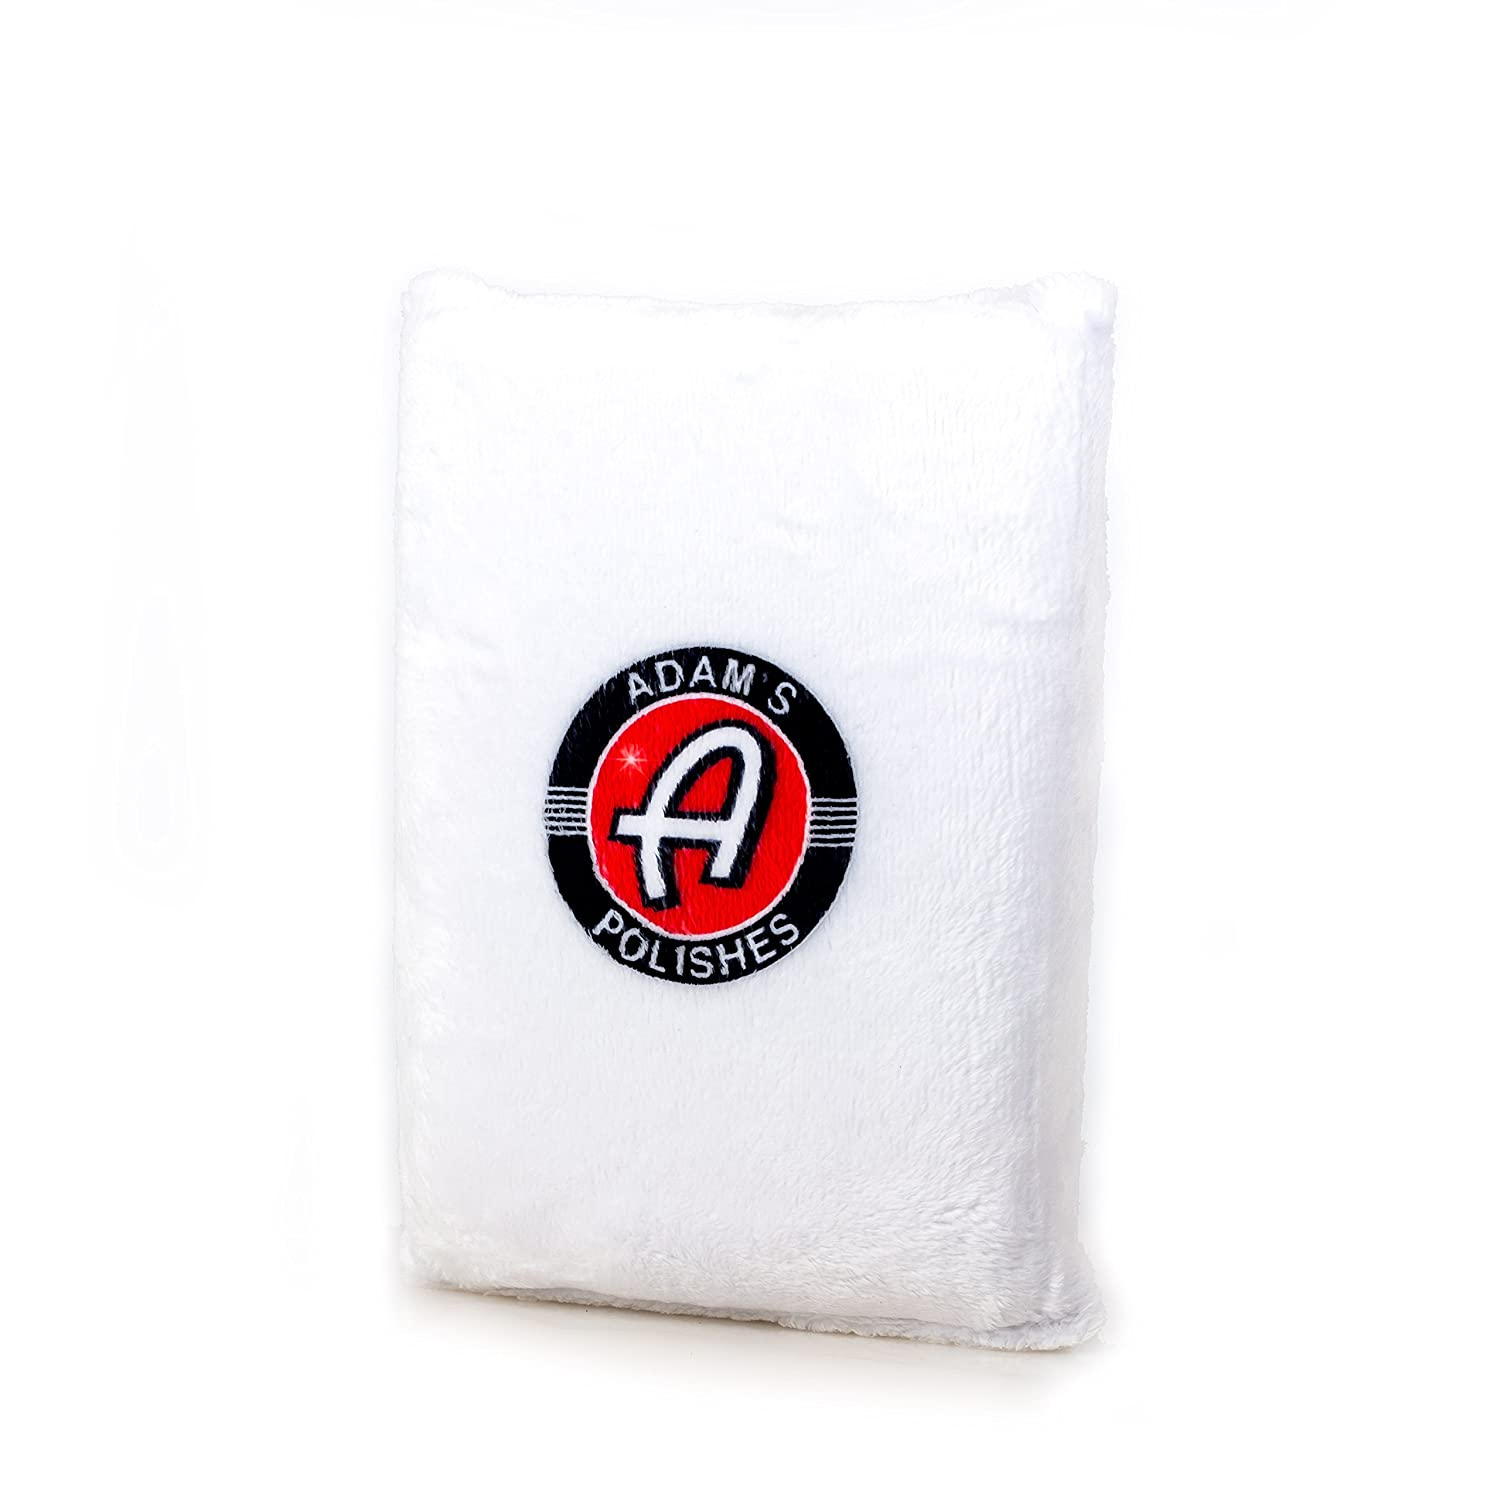 Adam's Premium Microfiber Wash Sponge - Super Soft Microfiber Wrapped Around a Sponge That Holds Tons Sudsy Car Wash Water - Swirl Free Washing Guaranteed Adam' s Polishes